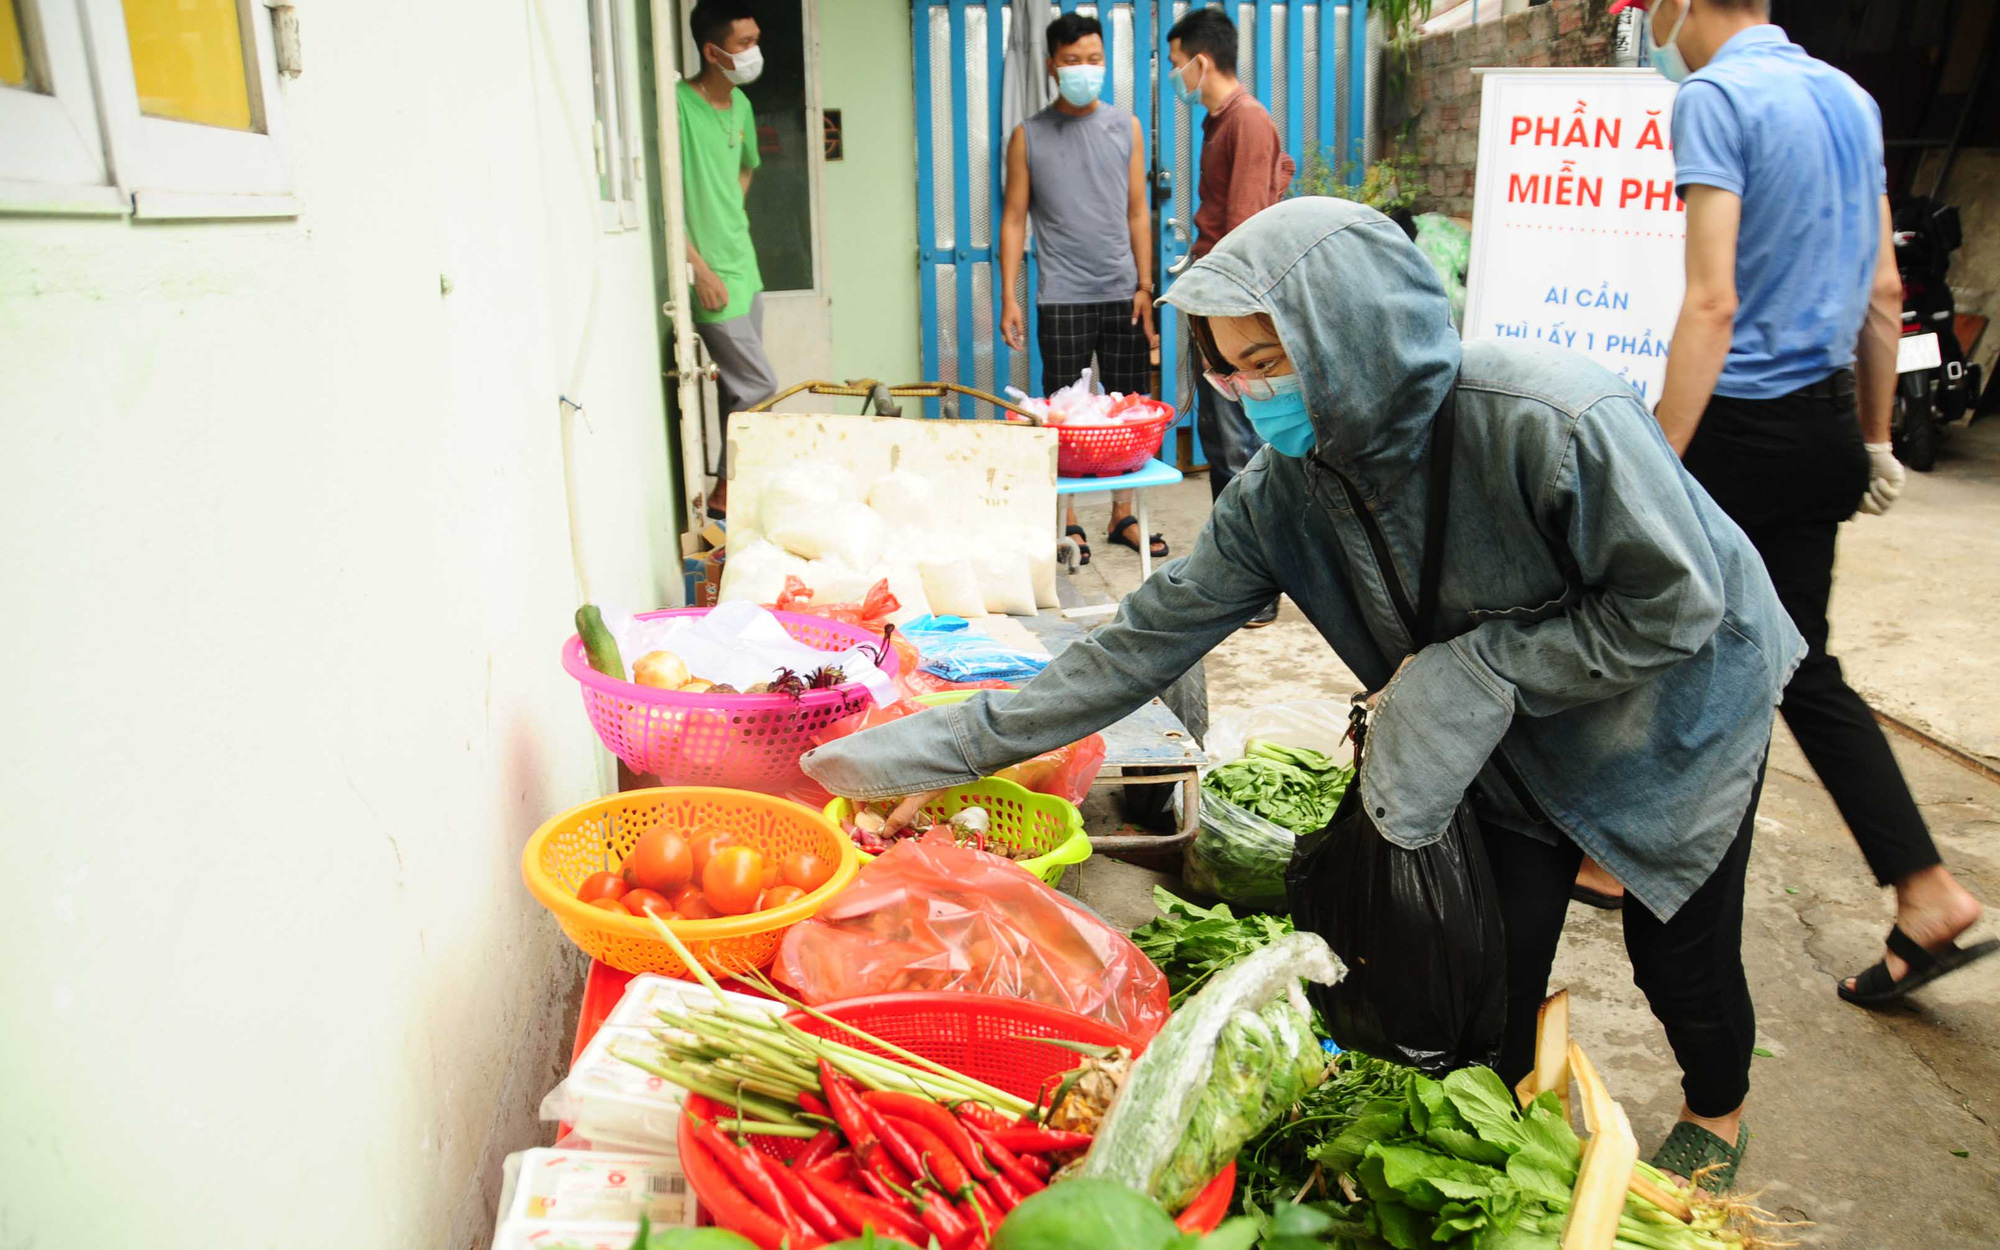 'Zero-VND Market' offers much needed aid for out-of-town students stranded in Da Nang